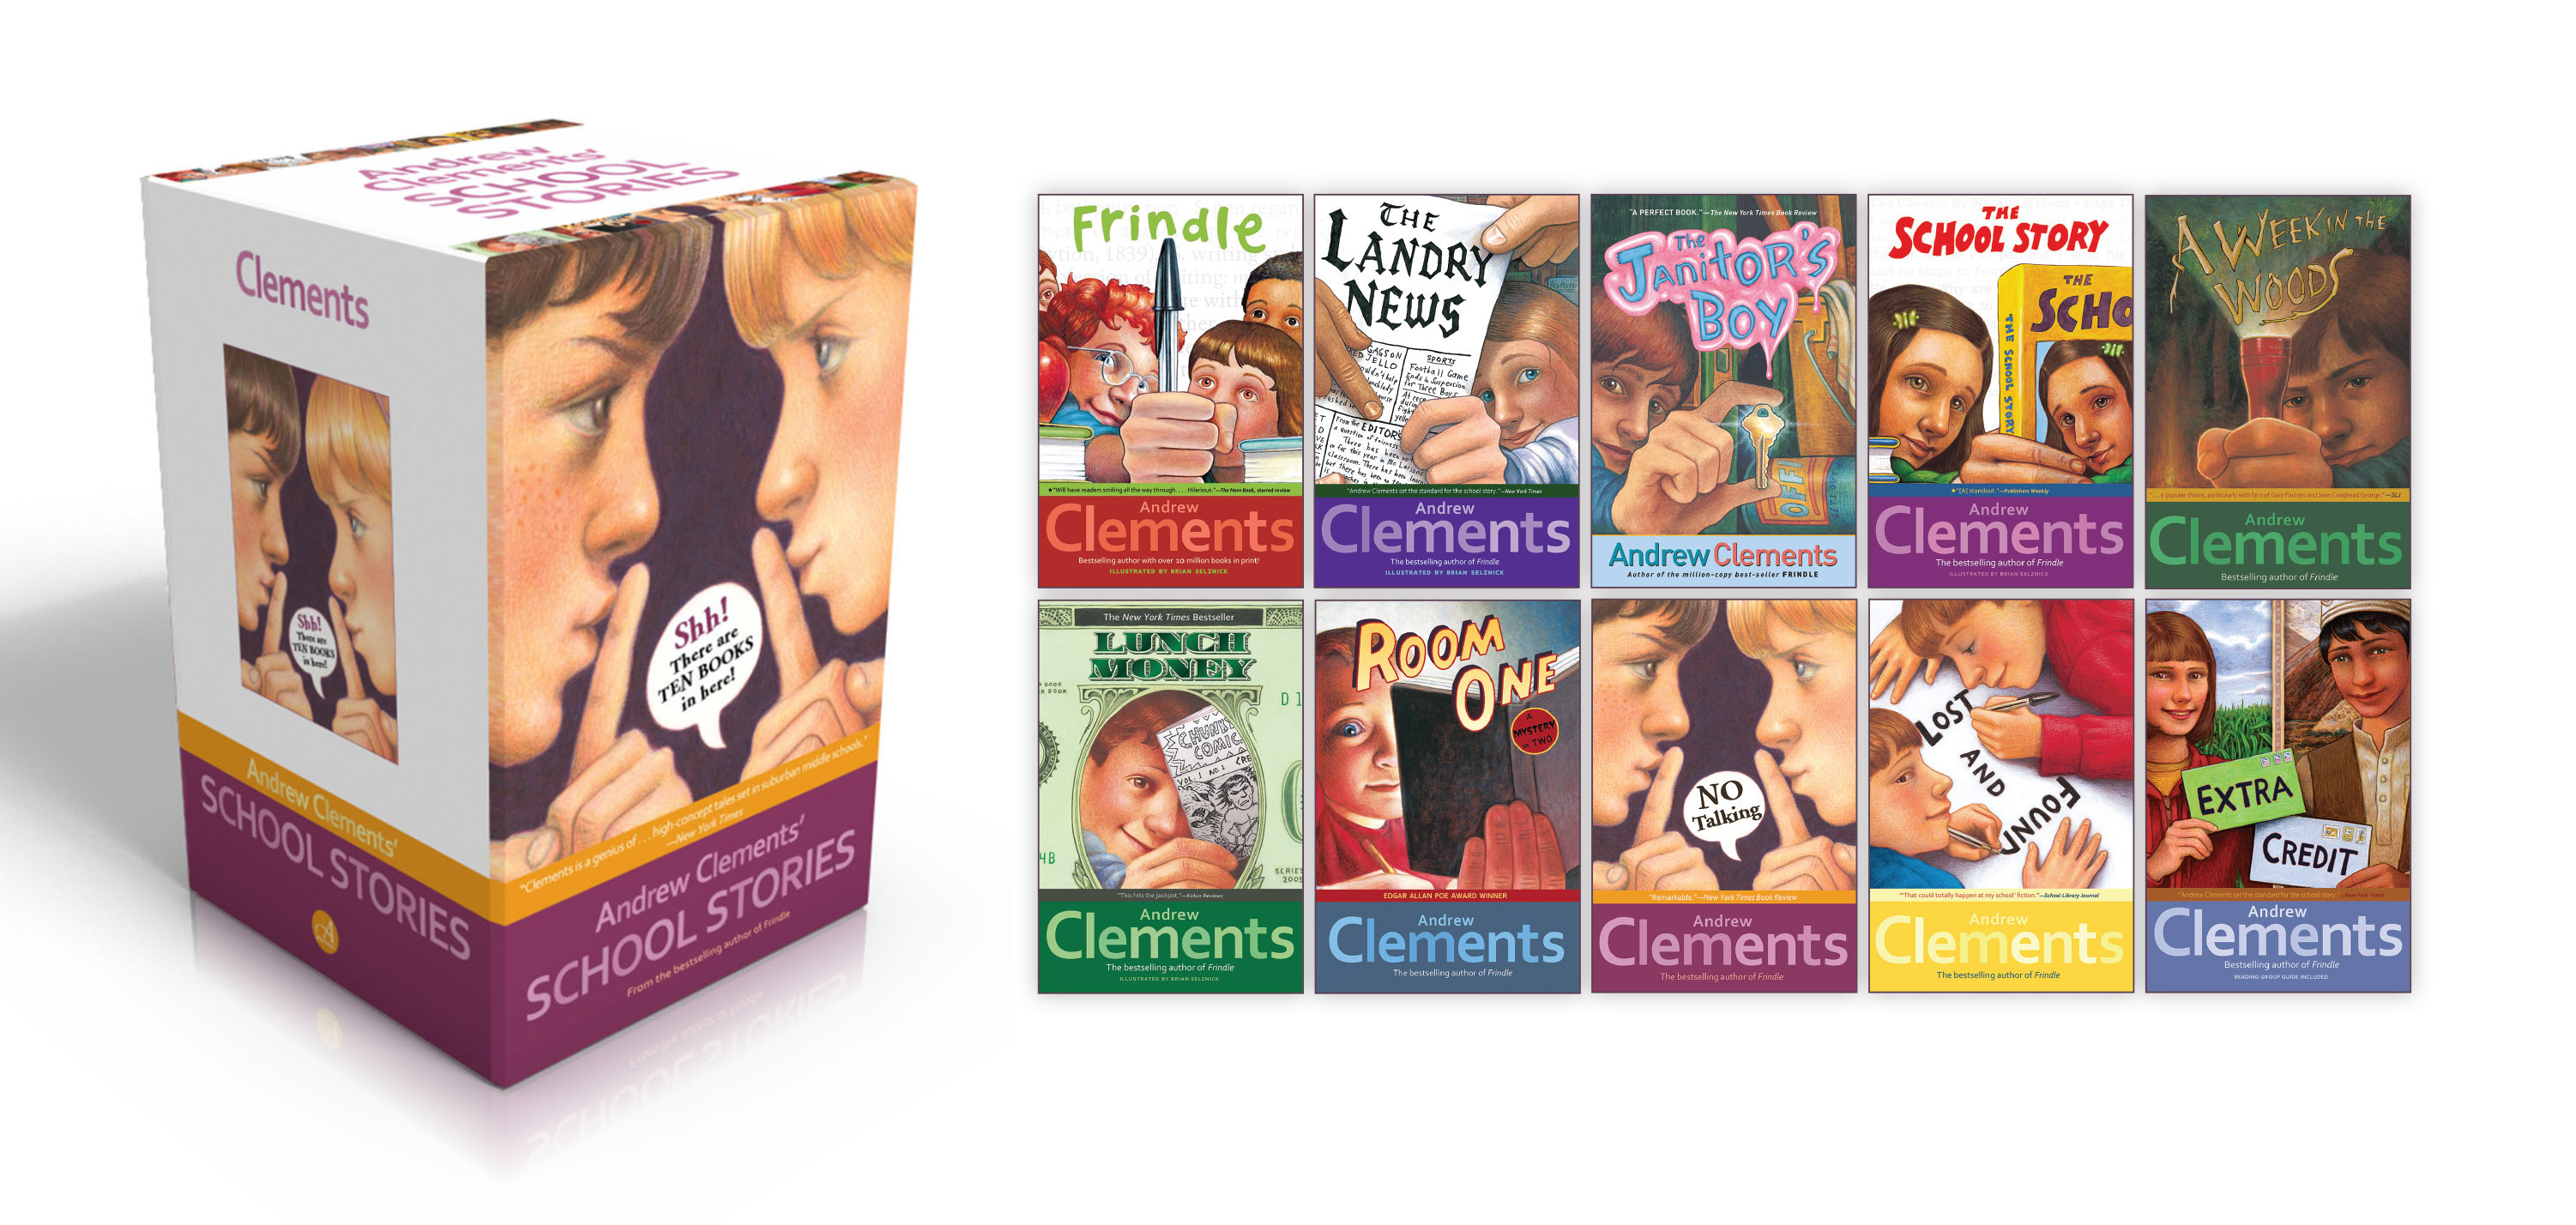 Andrew-clements-school-stories-9781442493865_hr